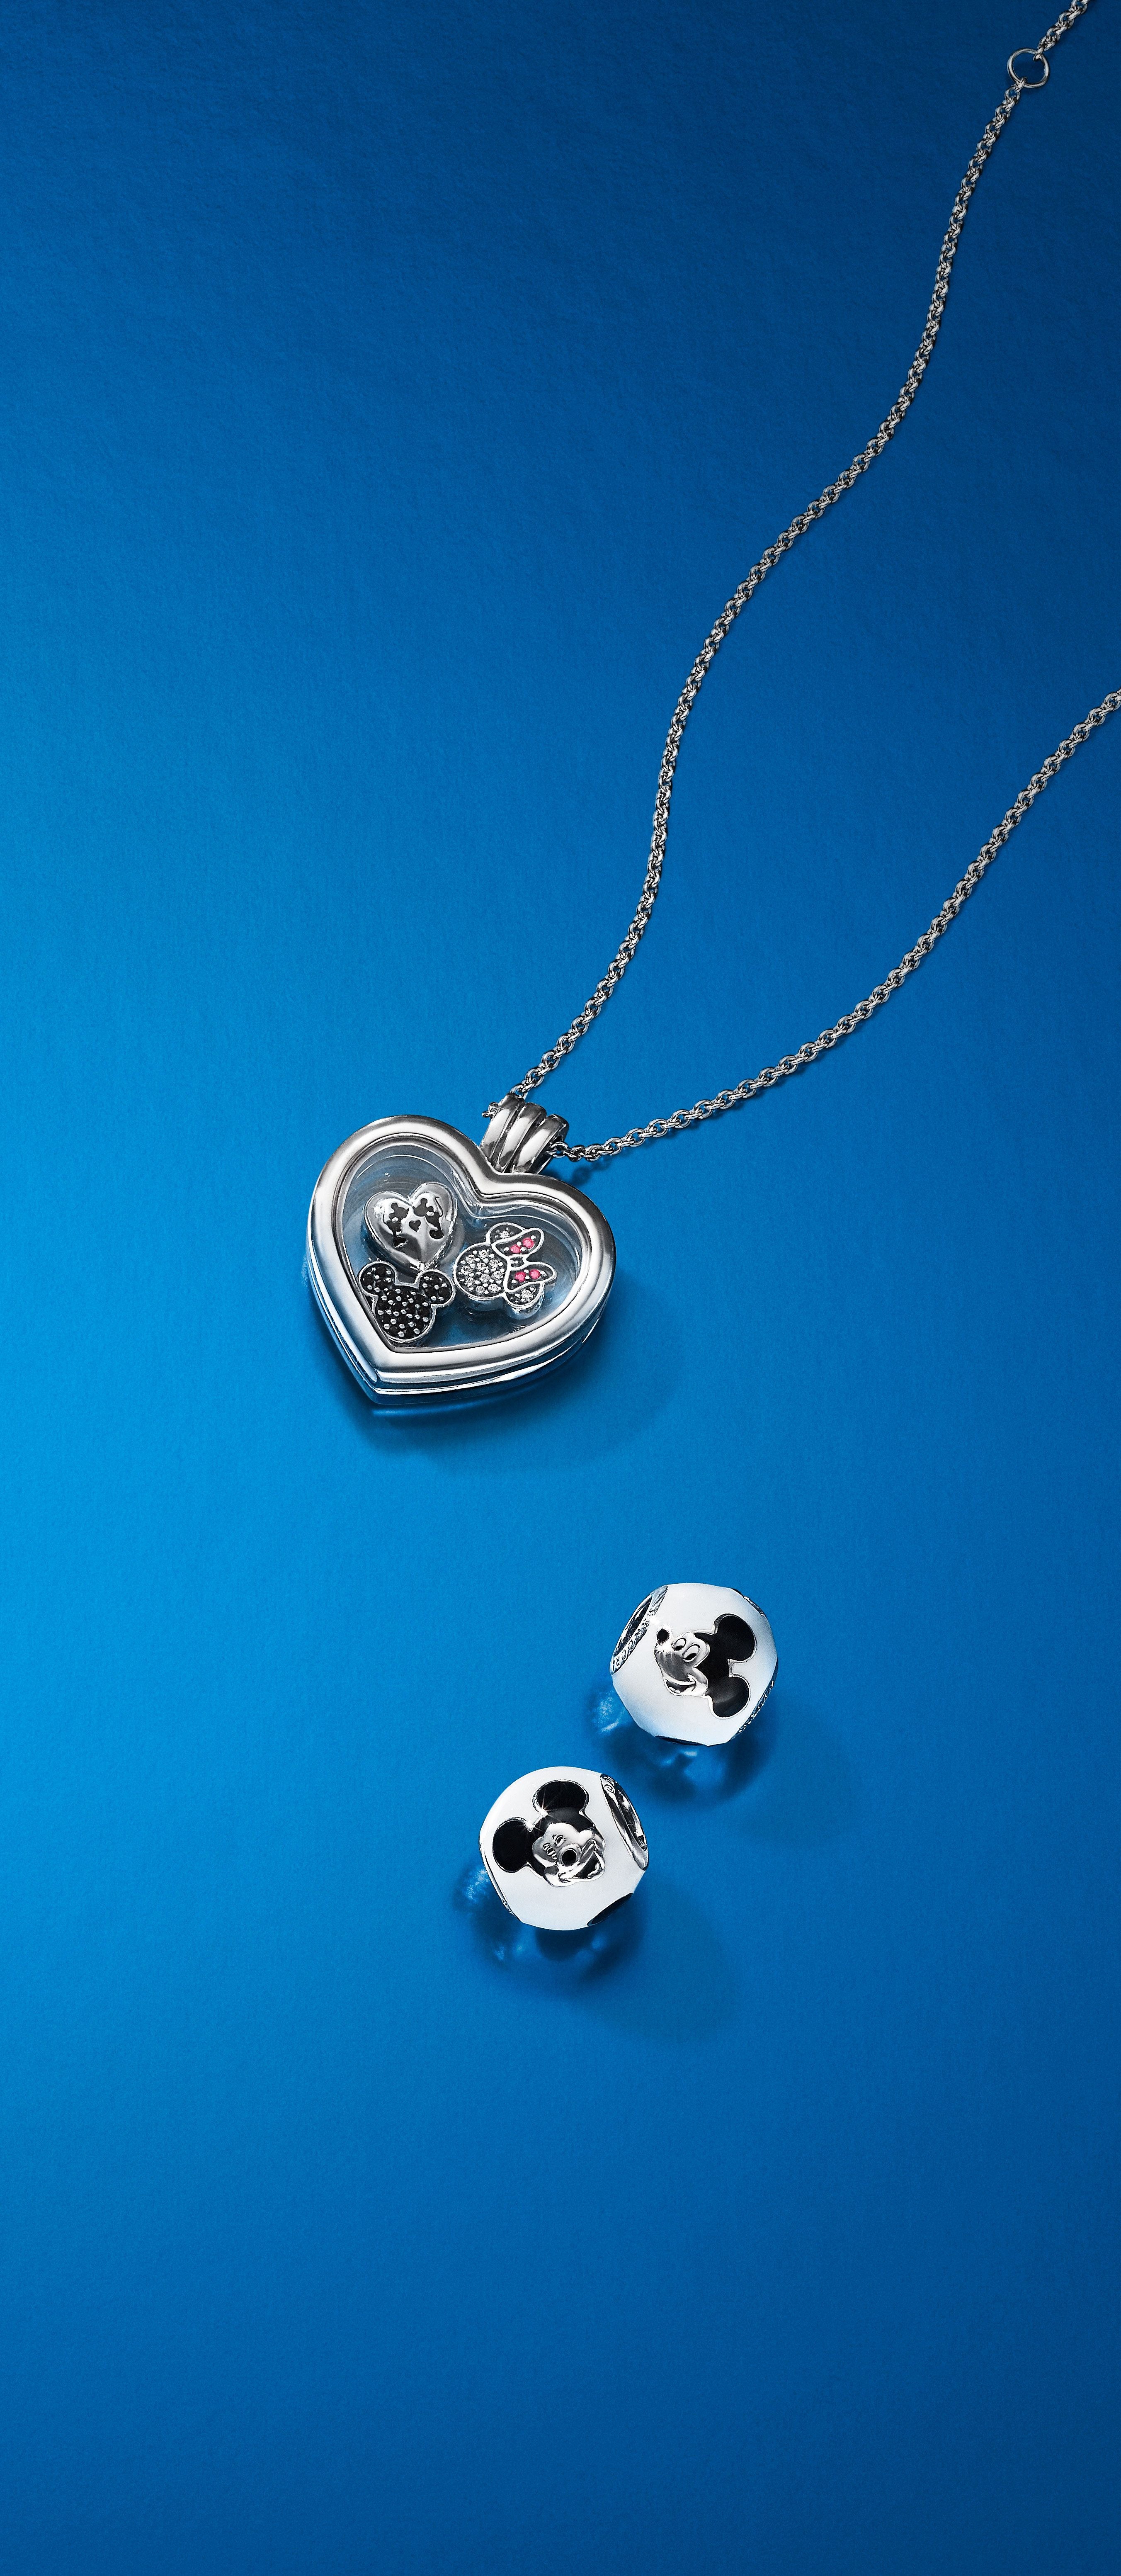 ea9c8b2b1 The new PANDORA Disney collection is finally here! Put a magical spin on  your floating locket with new Mickey and Minnie Mouse petites, or tell your  story ...